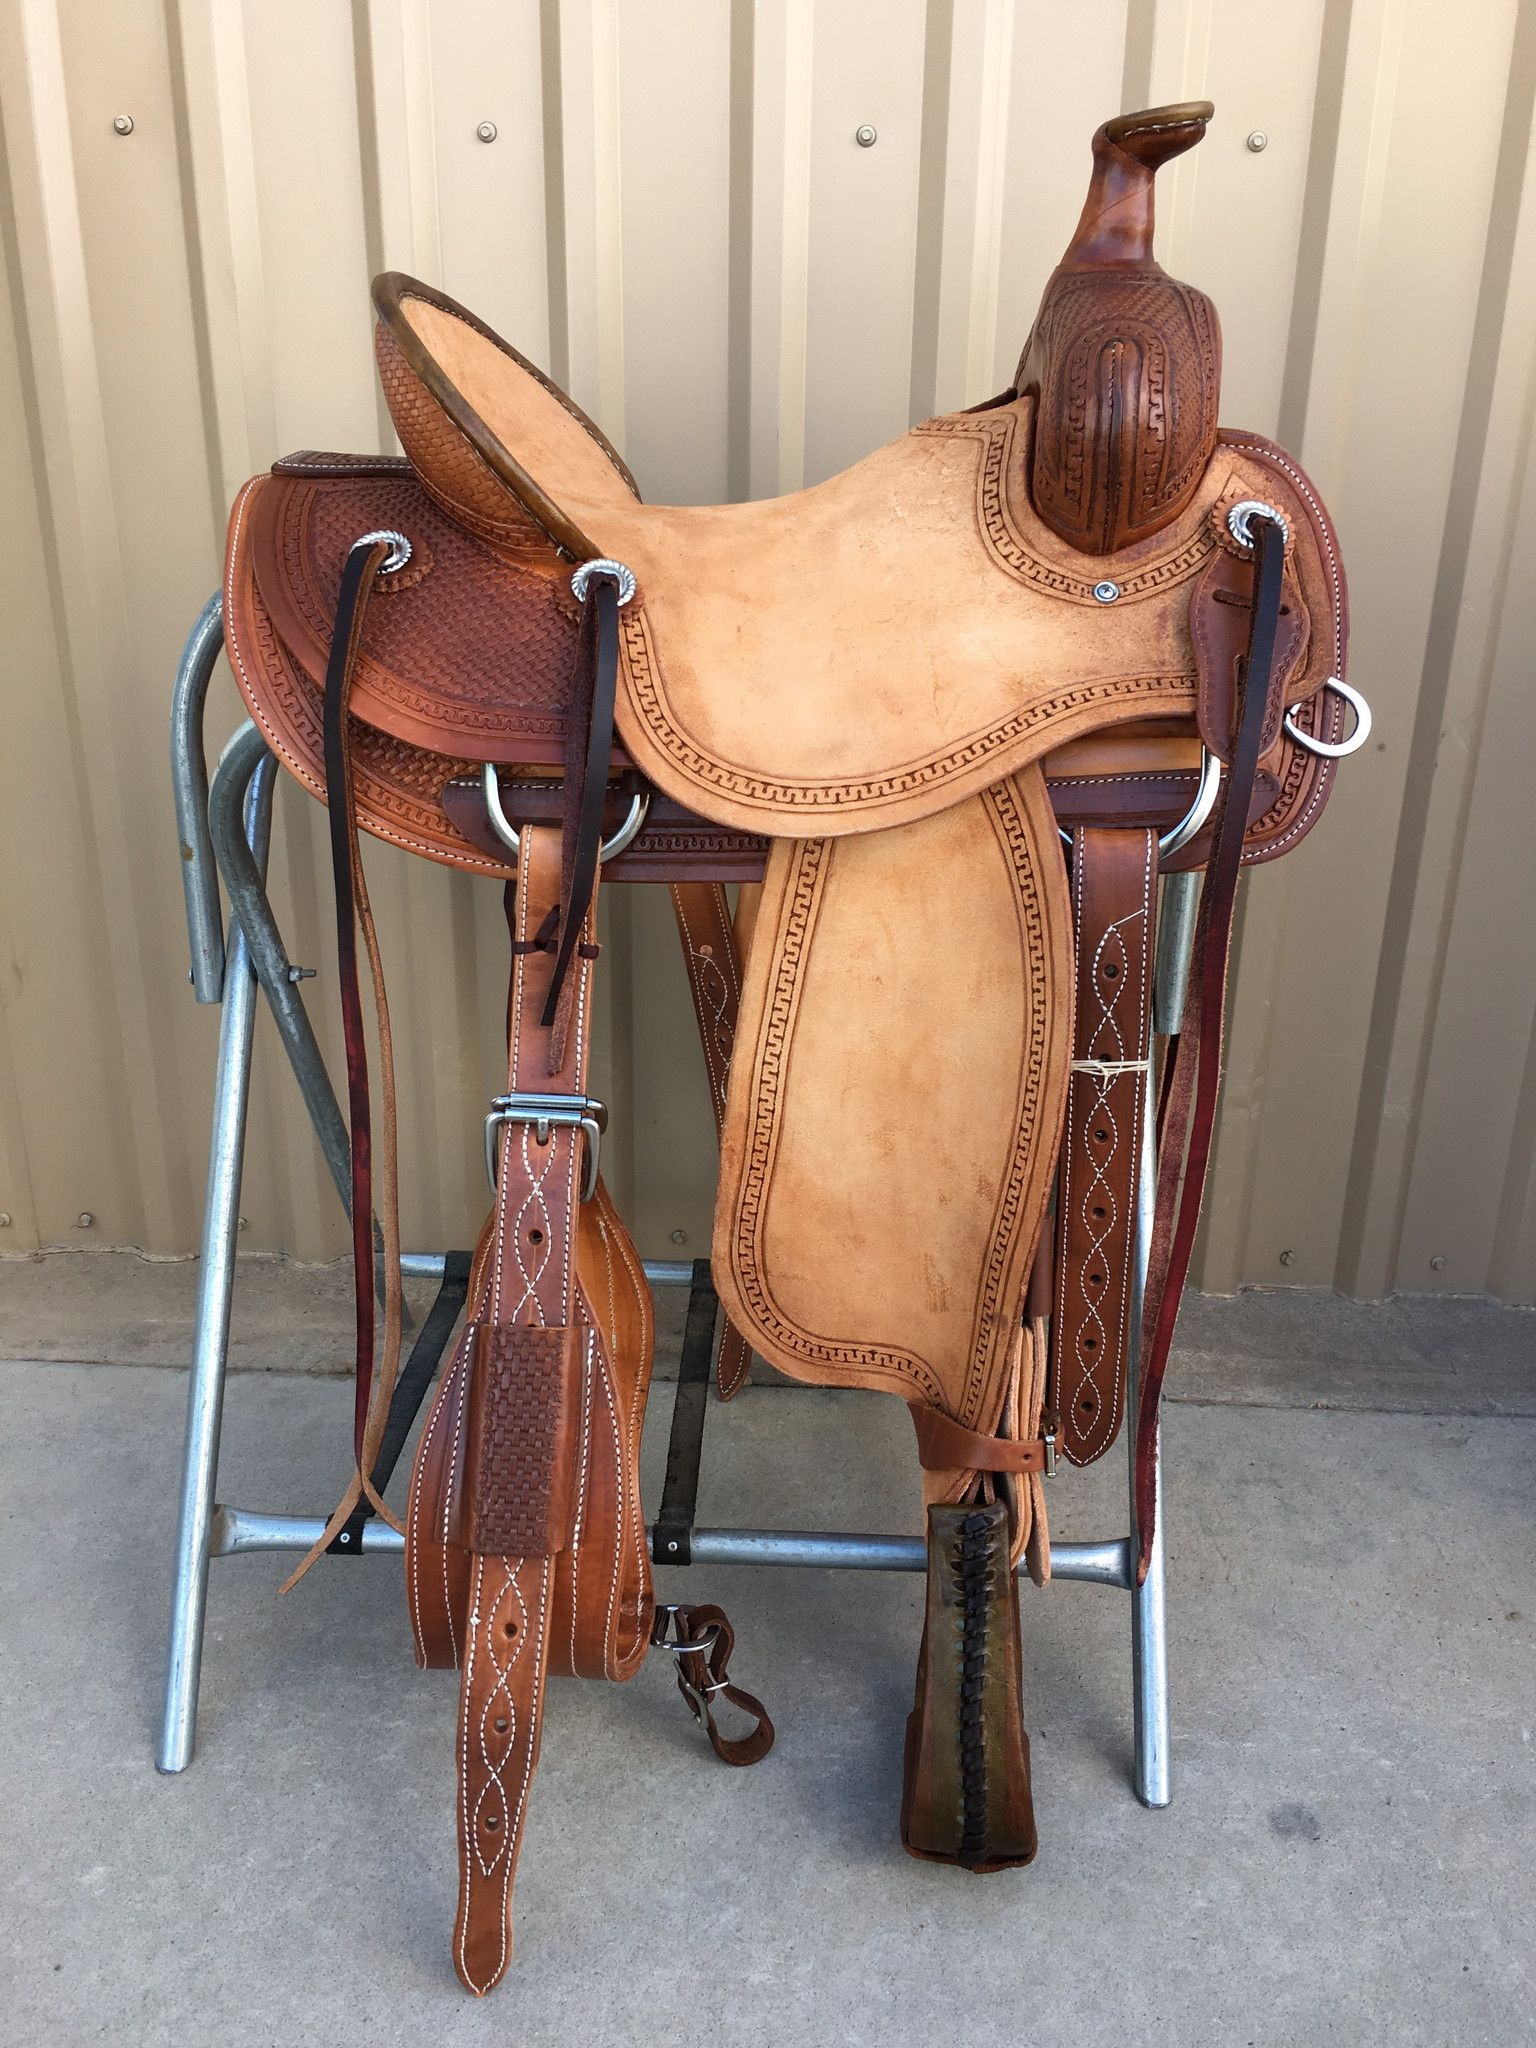 Csa 348 Corriente Association Ranch Saddle Wade Saddles Horse Saddle Shop Saddles